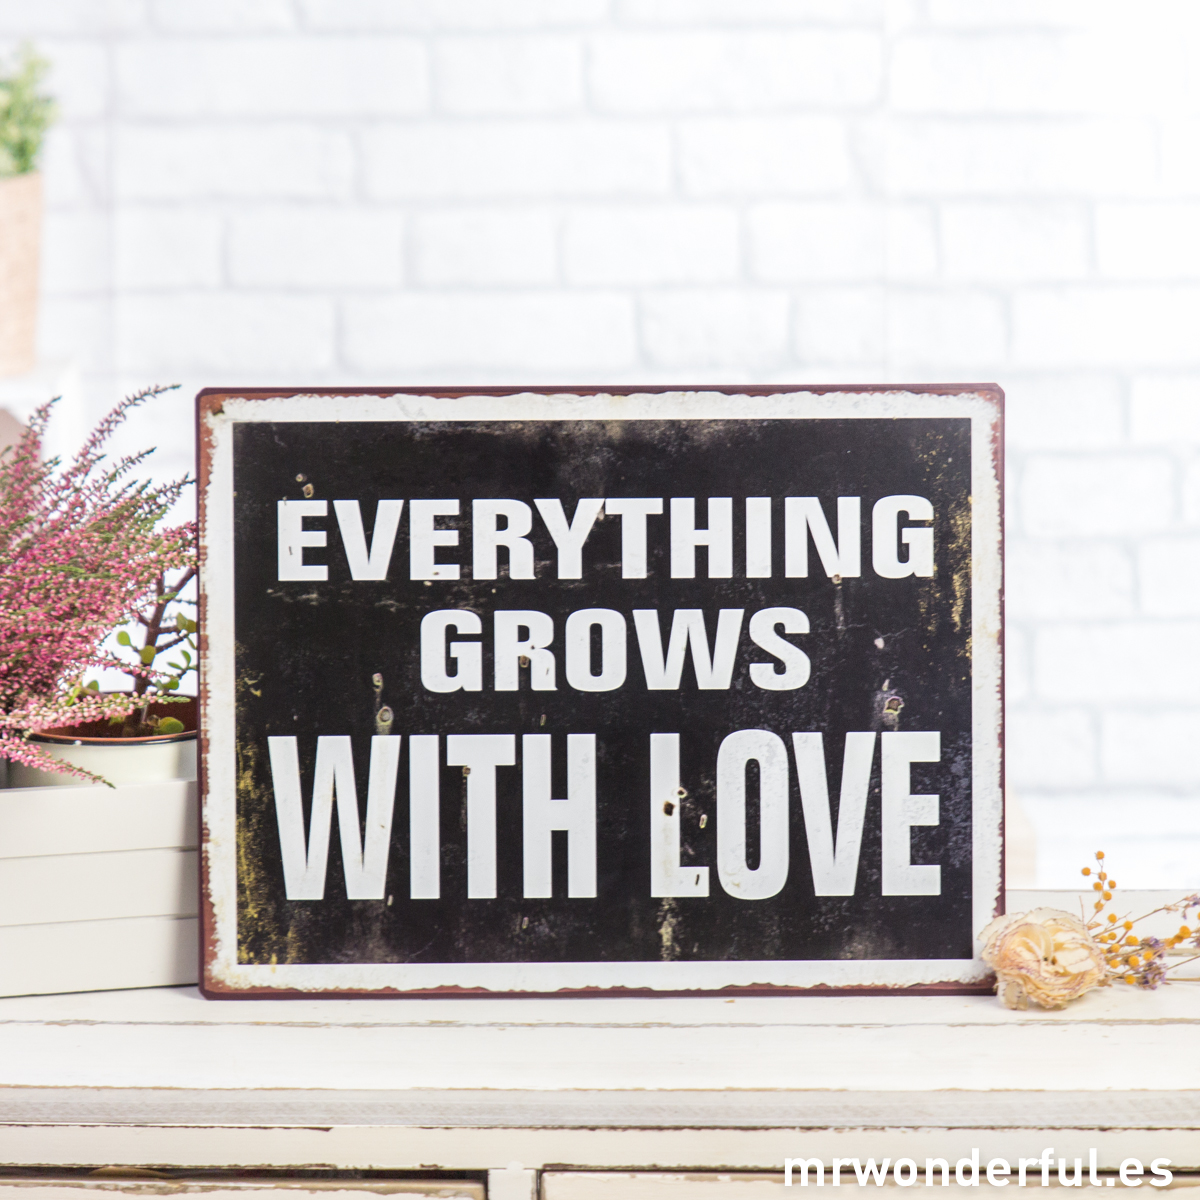 mrwonderful_643001_1_placa-metalica-everything-grows-with-love-1